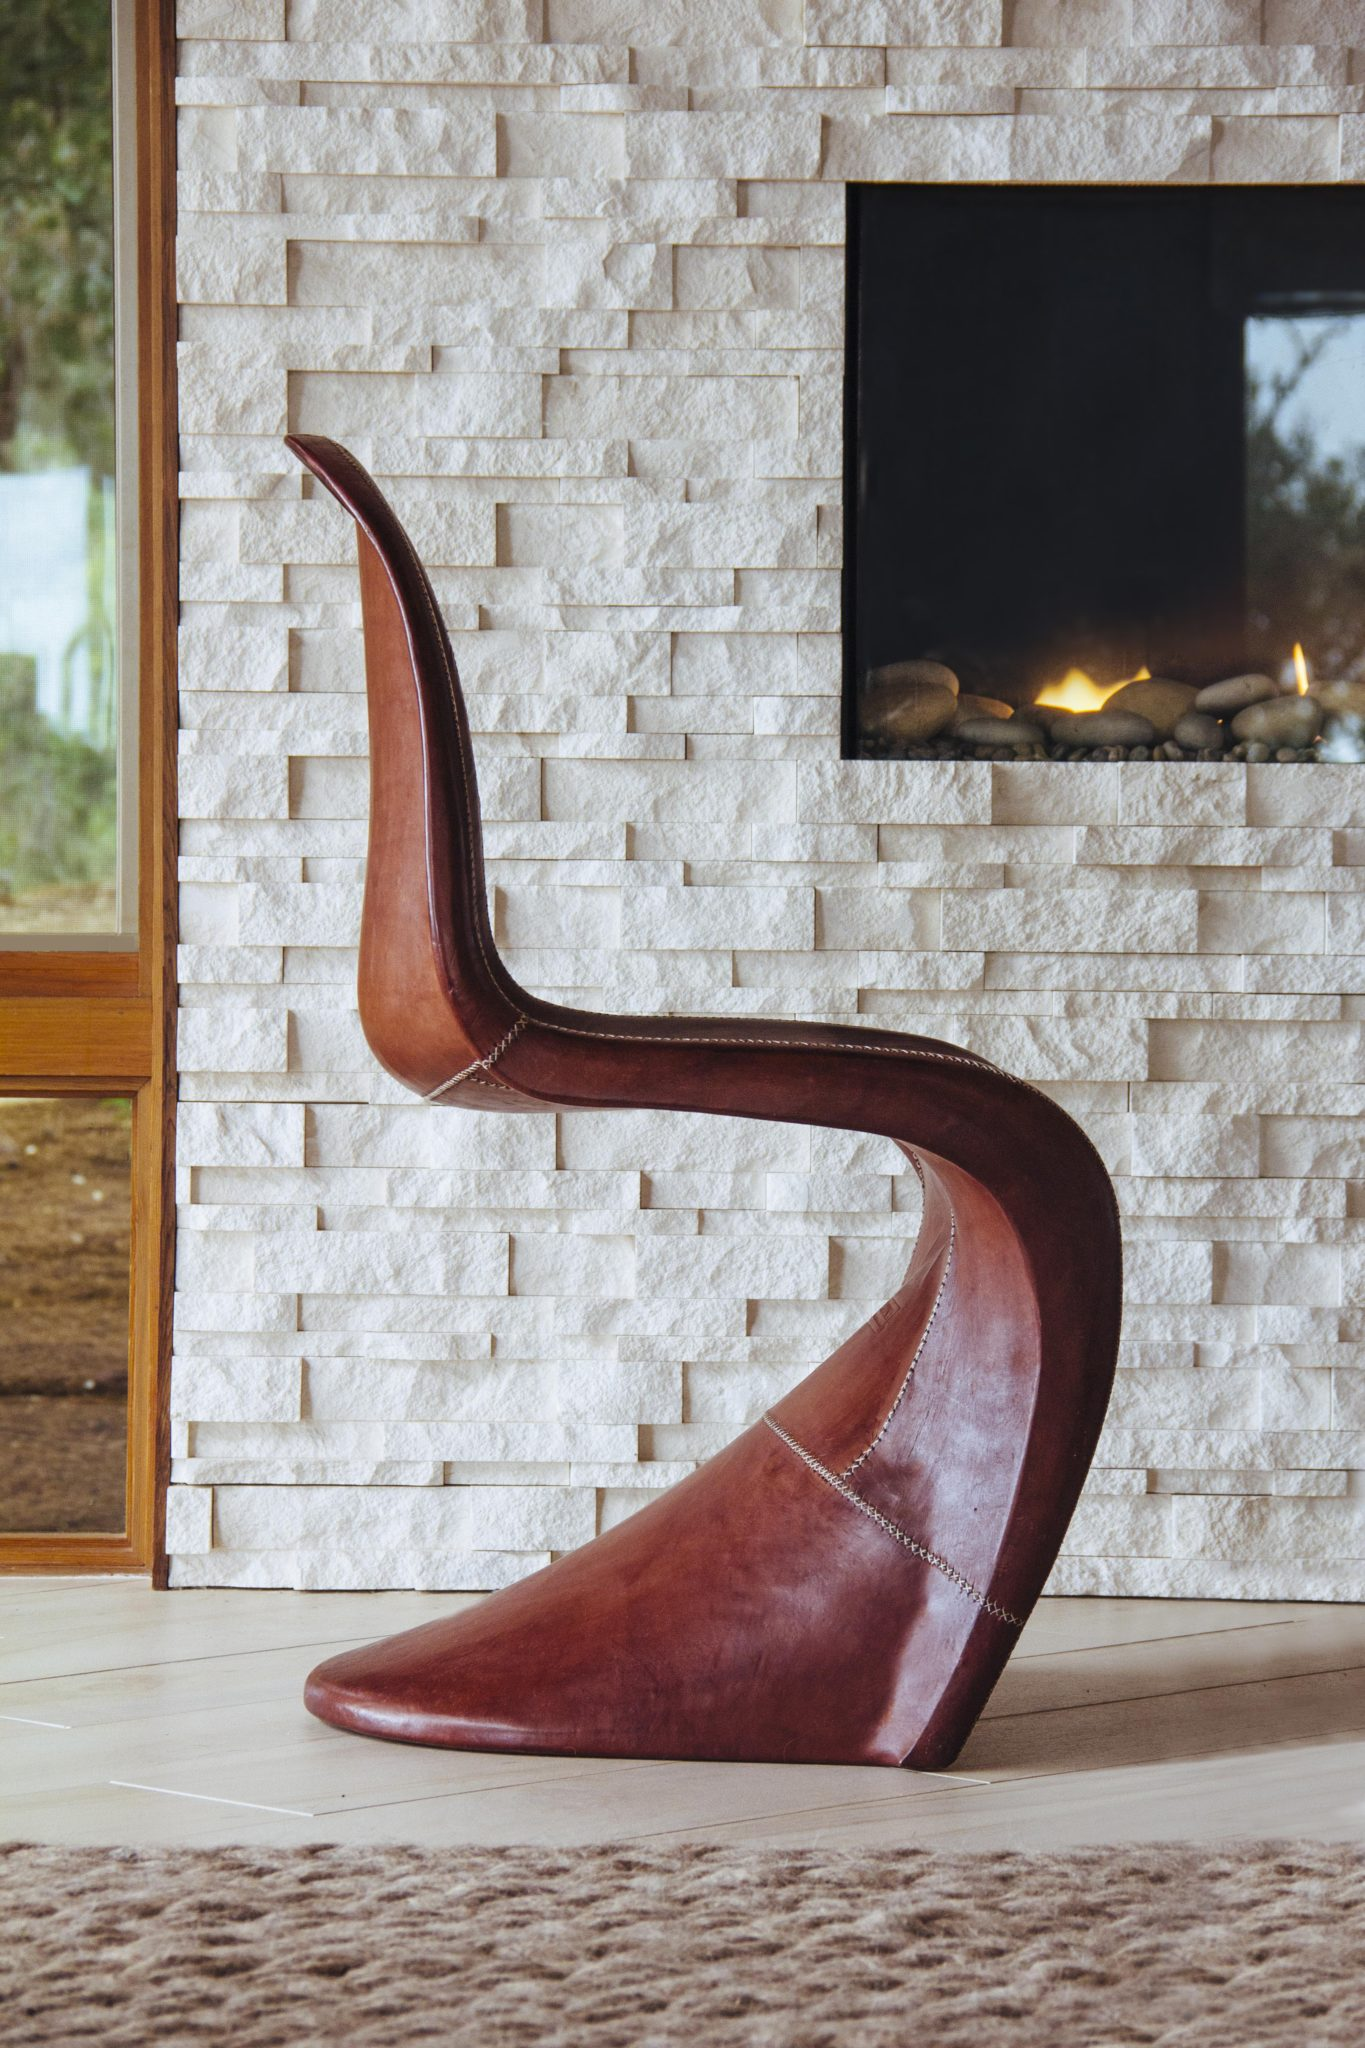 The curved leather chair is from Jayson Home.